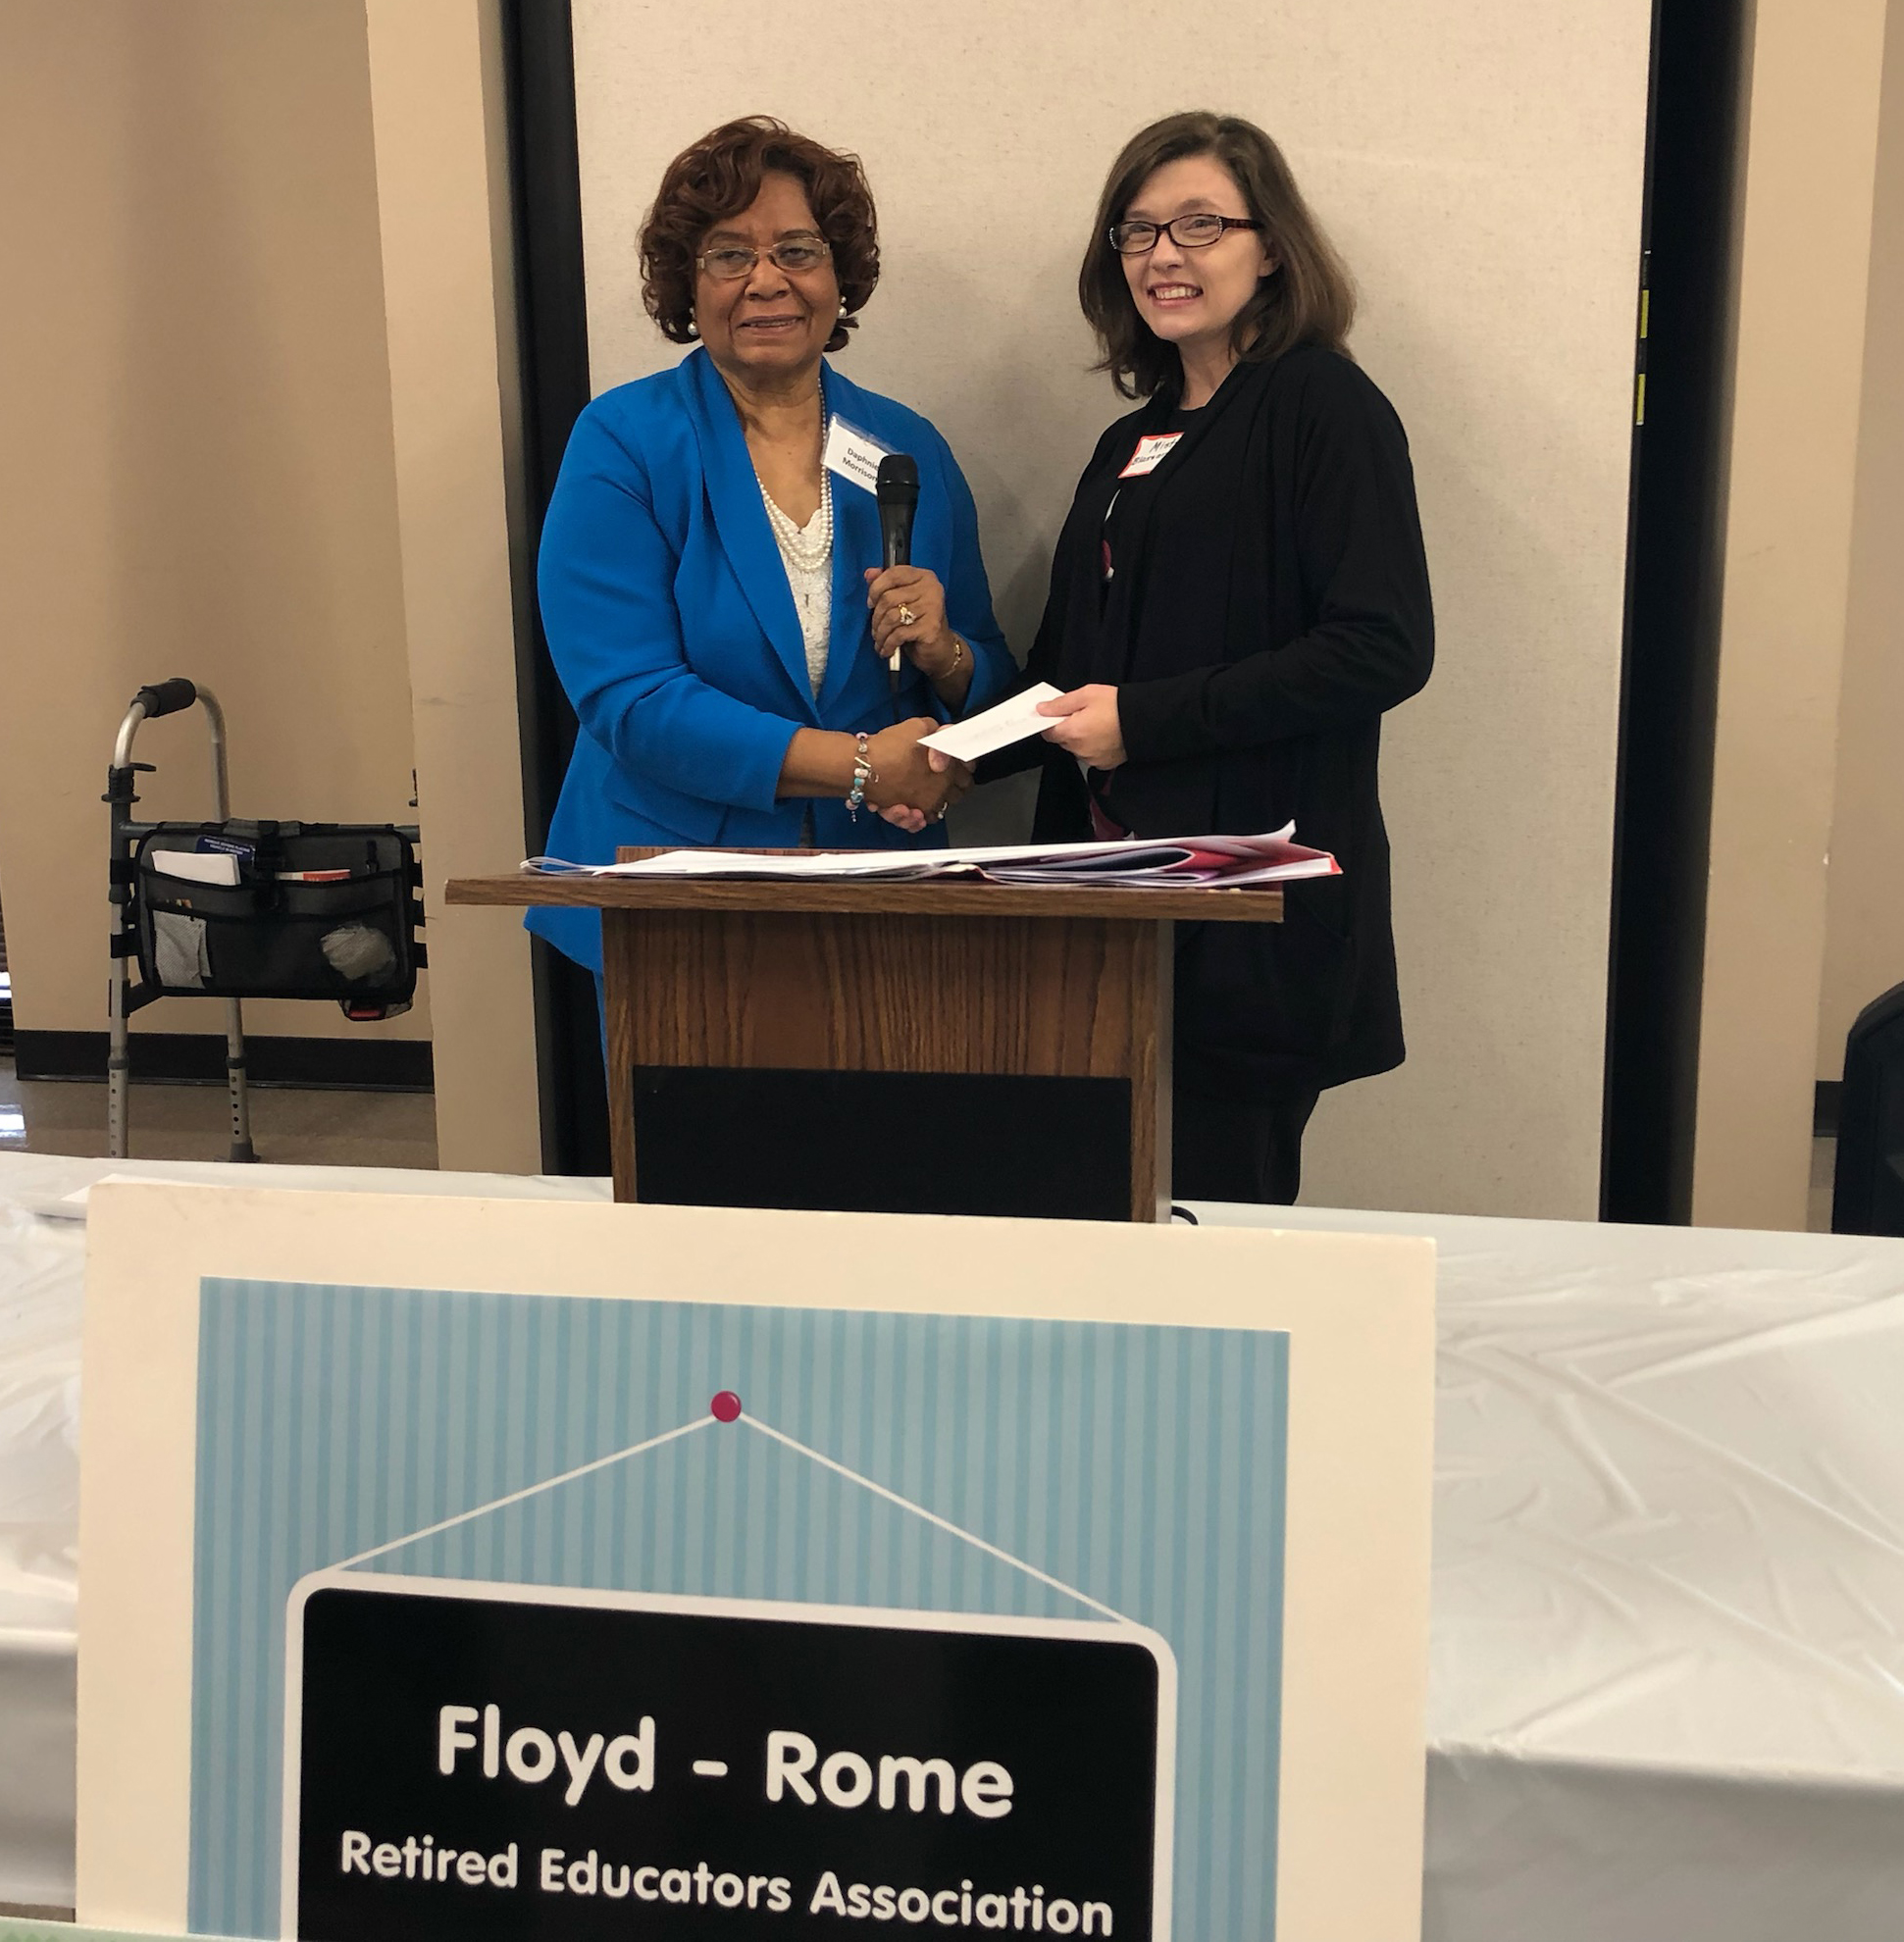 GNTC Early Childhood Care and Education student Misty Blasengame (right) receives a $1,000 scholarship from Daphnie Morrison (left) during a luncheon for the Floyd-Rome Retired Educators Association.